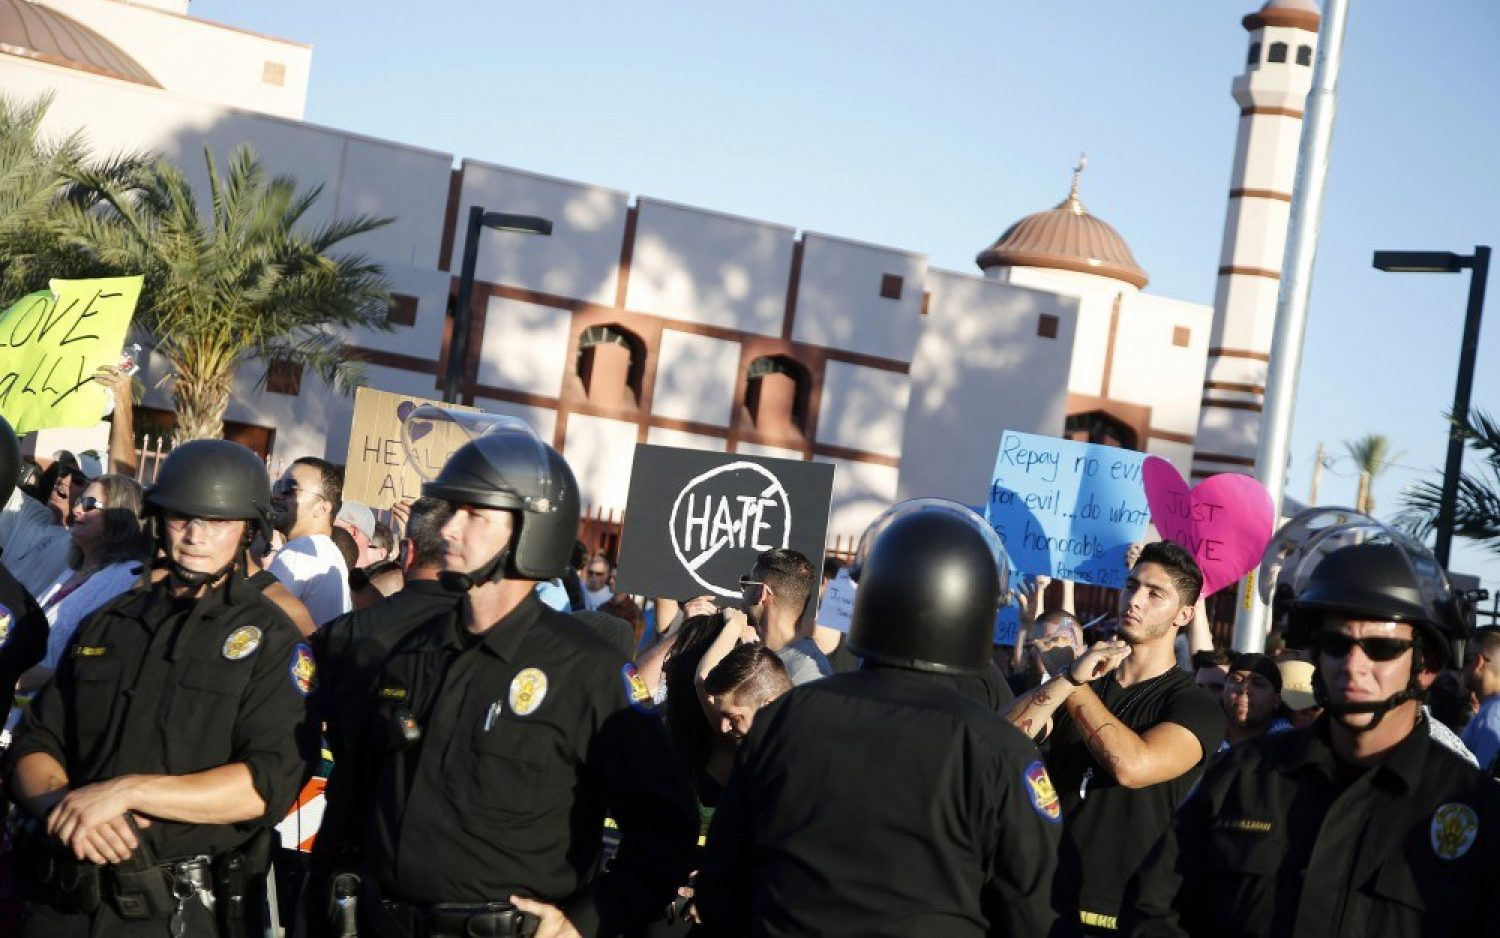 Christians at Phoenix protest stand between Muslims and anti-Islam crowd